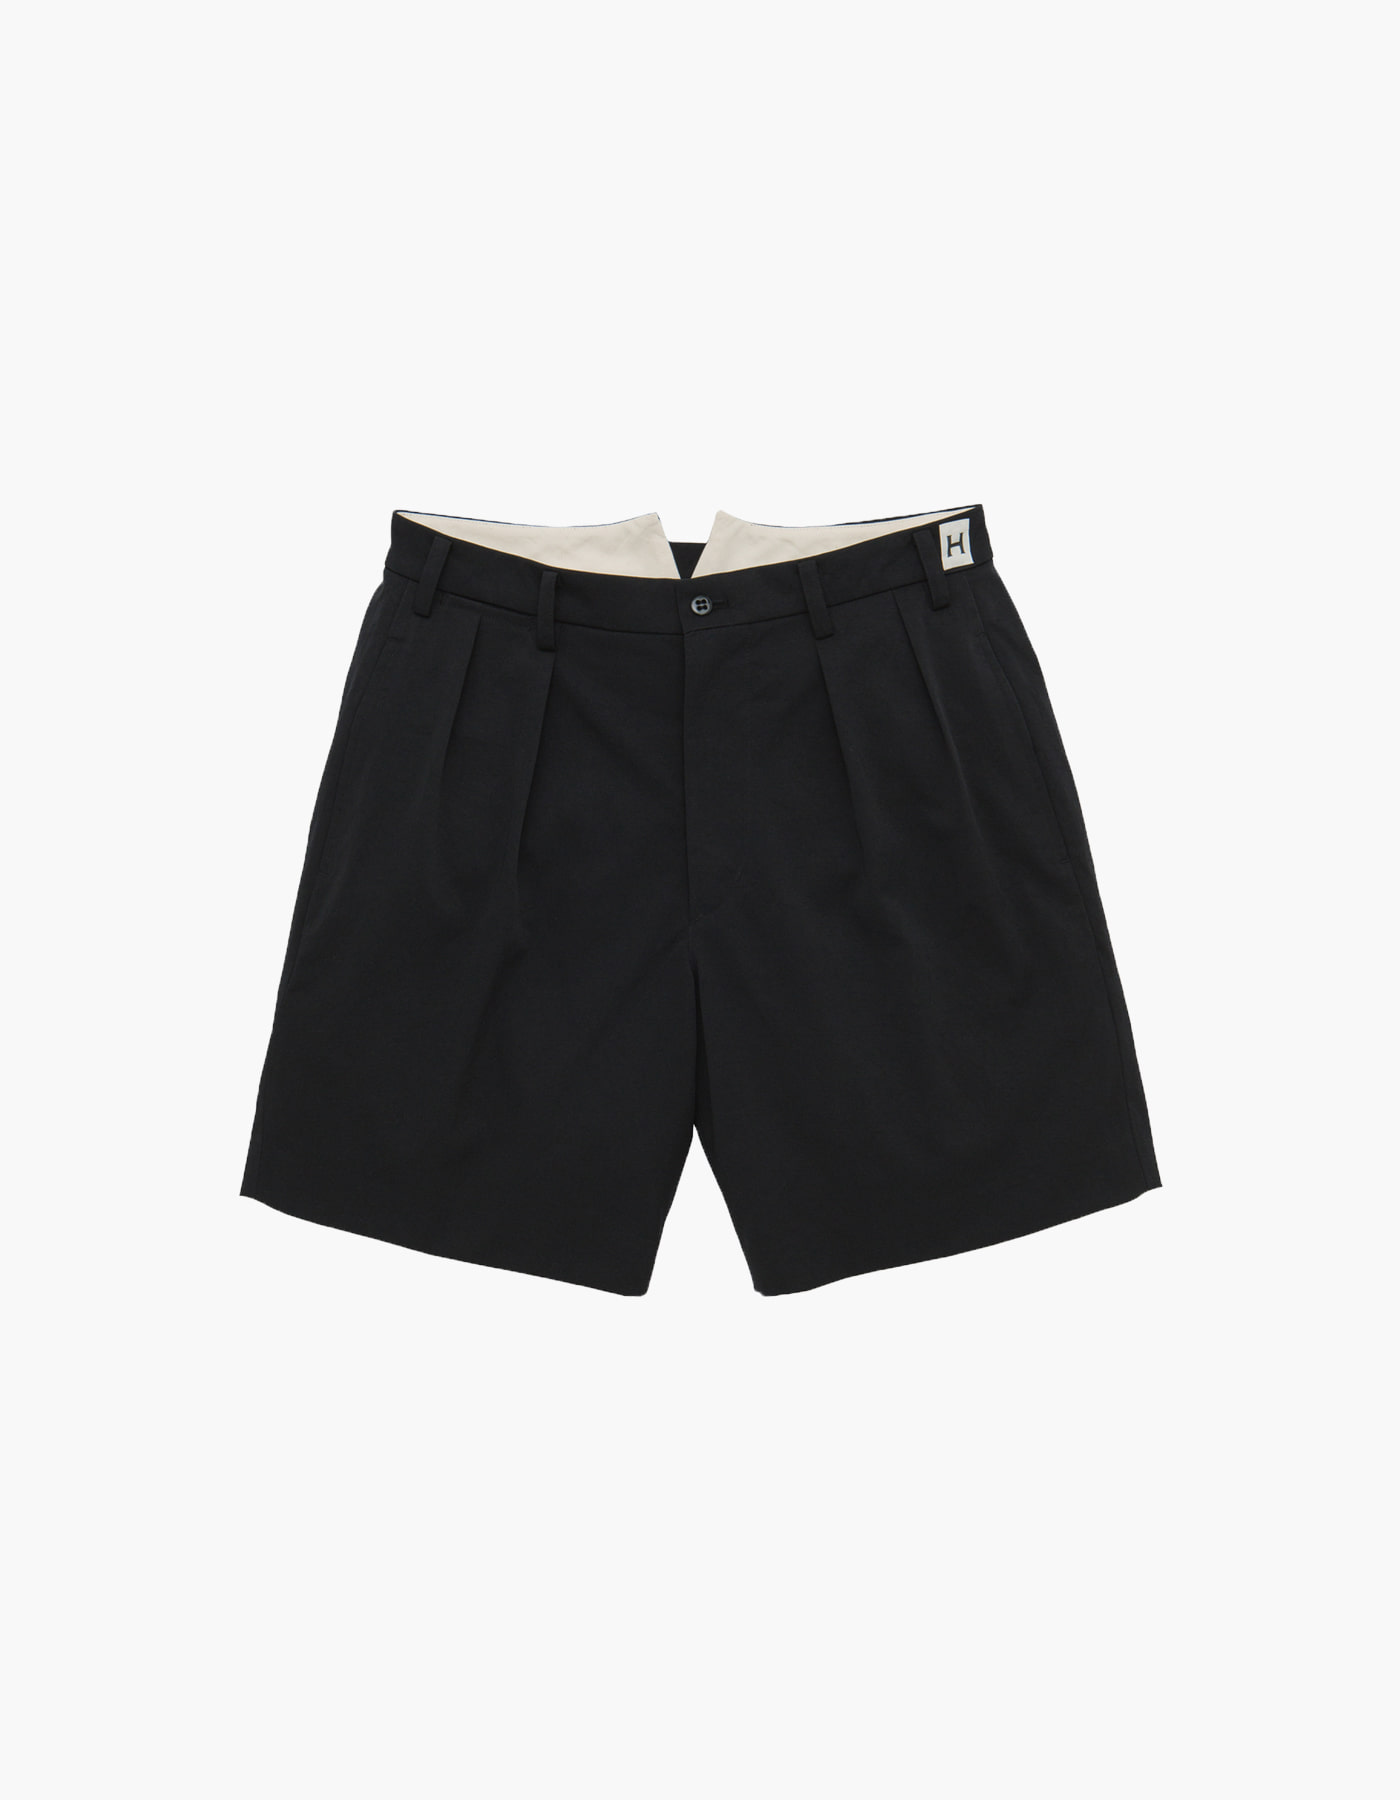 NYLON CHINO CLOTH SHORTS / BLACK